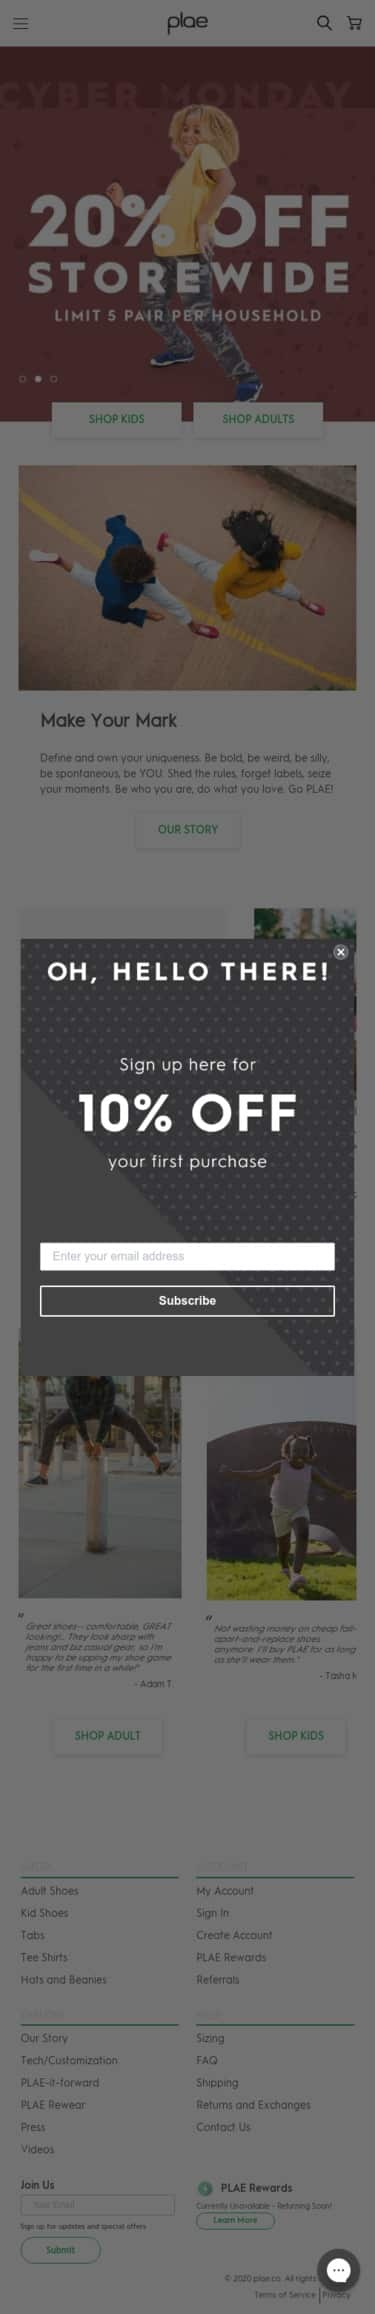 Plae.co Coupon